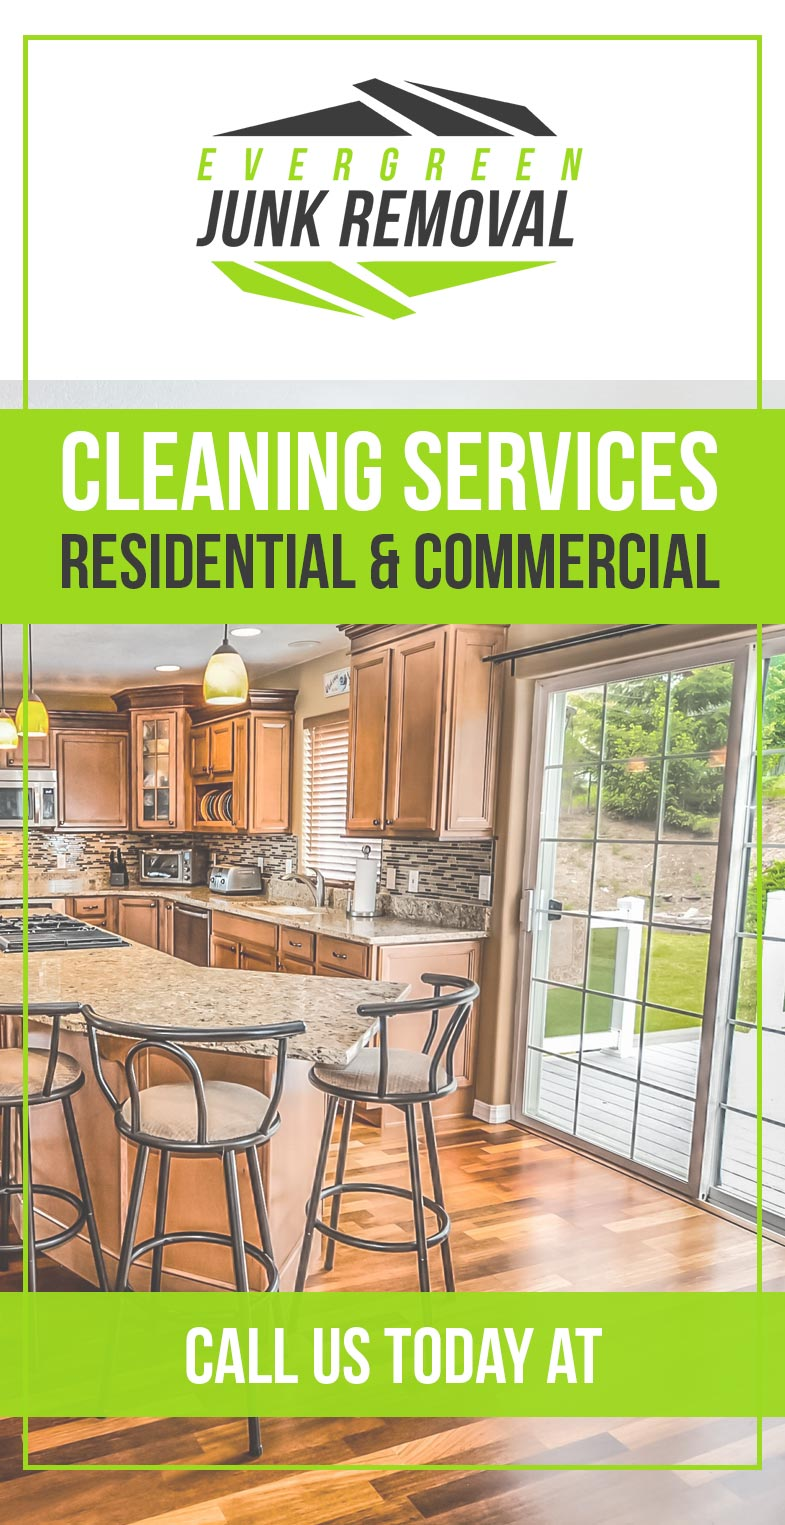 Delray Beach Maid Services